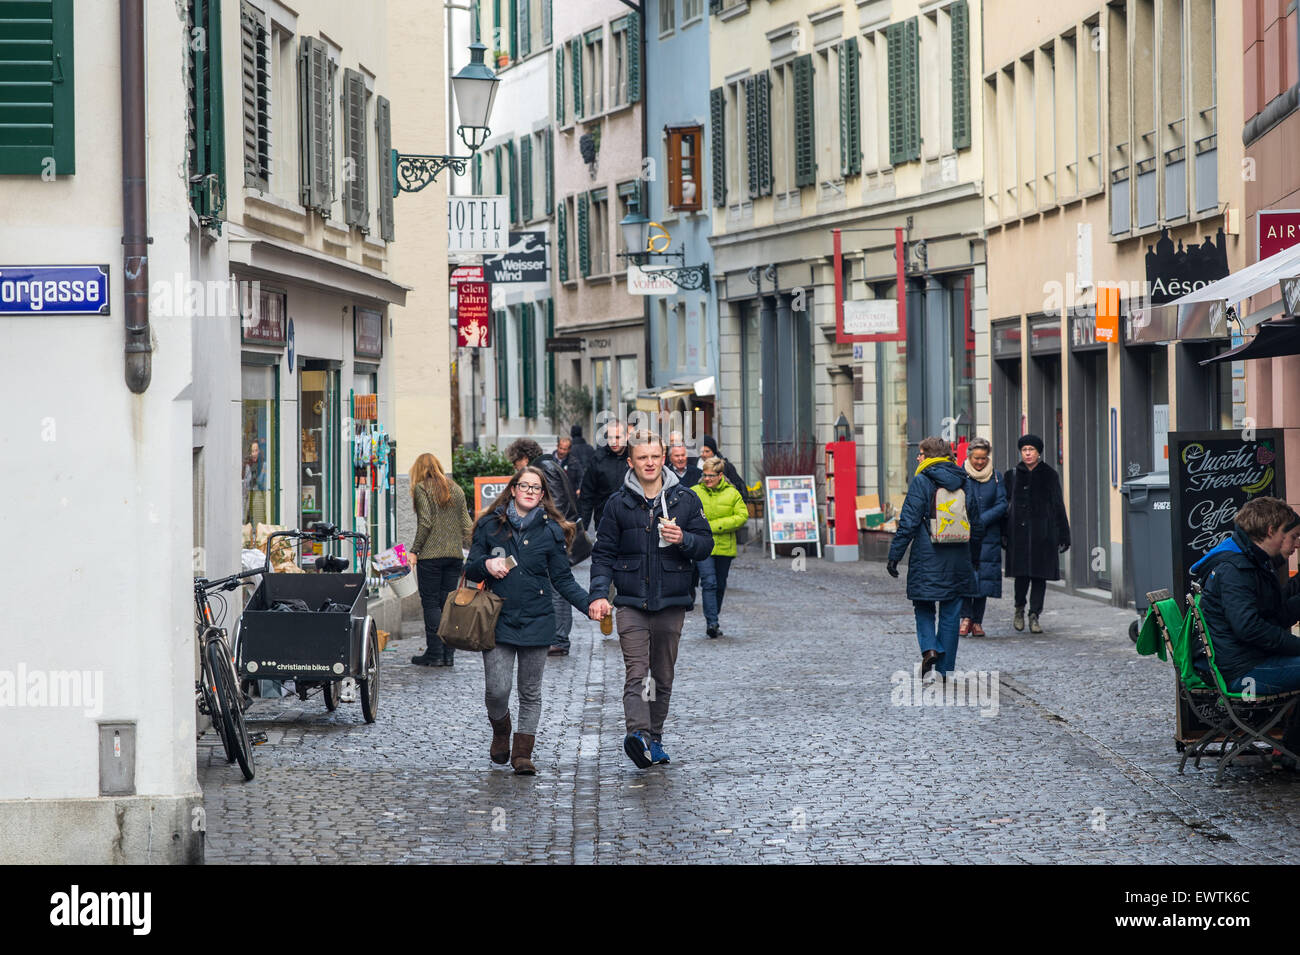 Zurich Switzerland - People walking down street - Stock Image